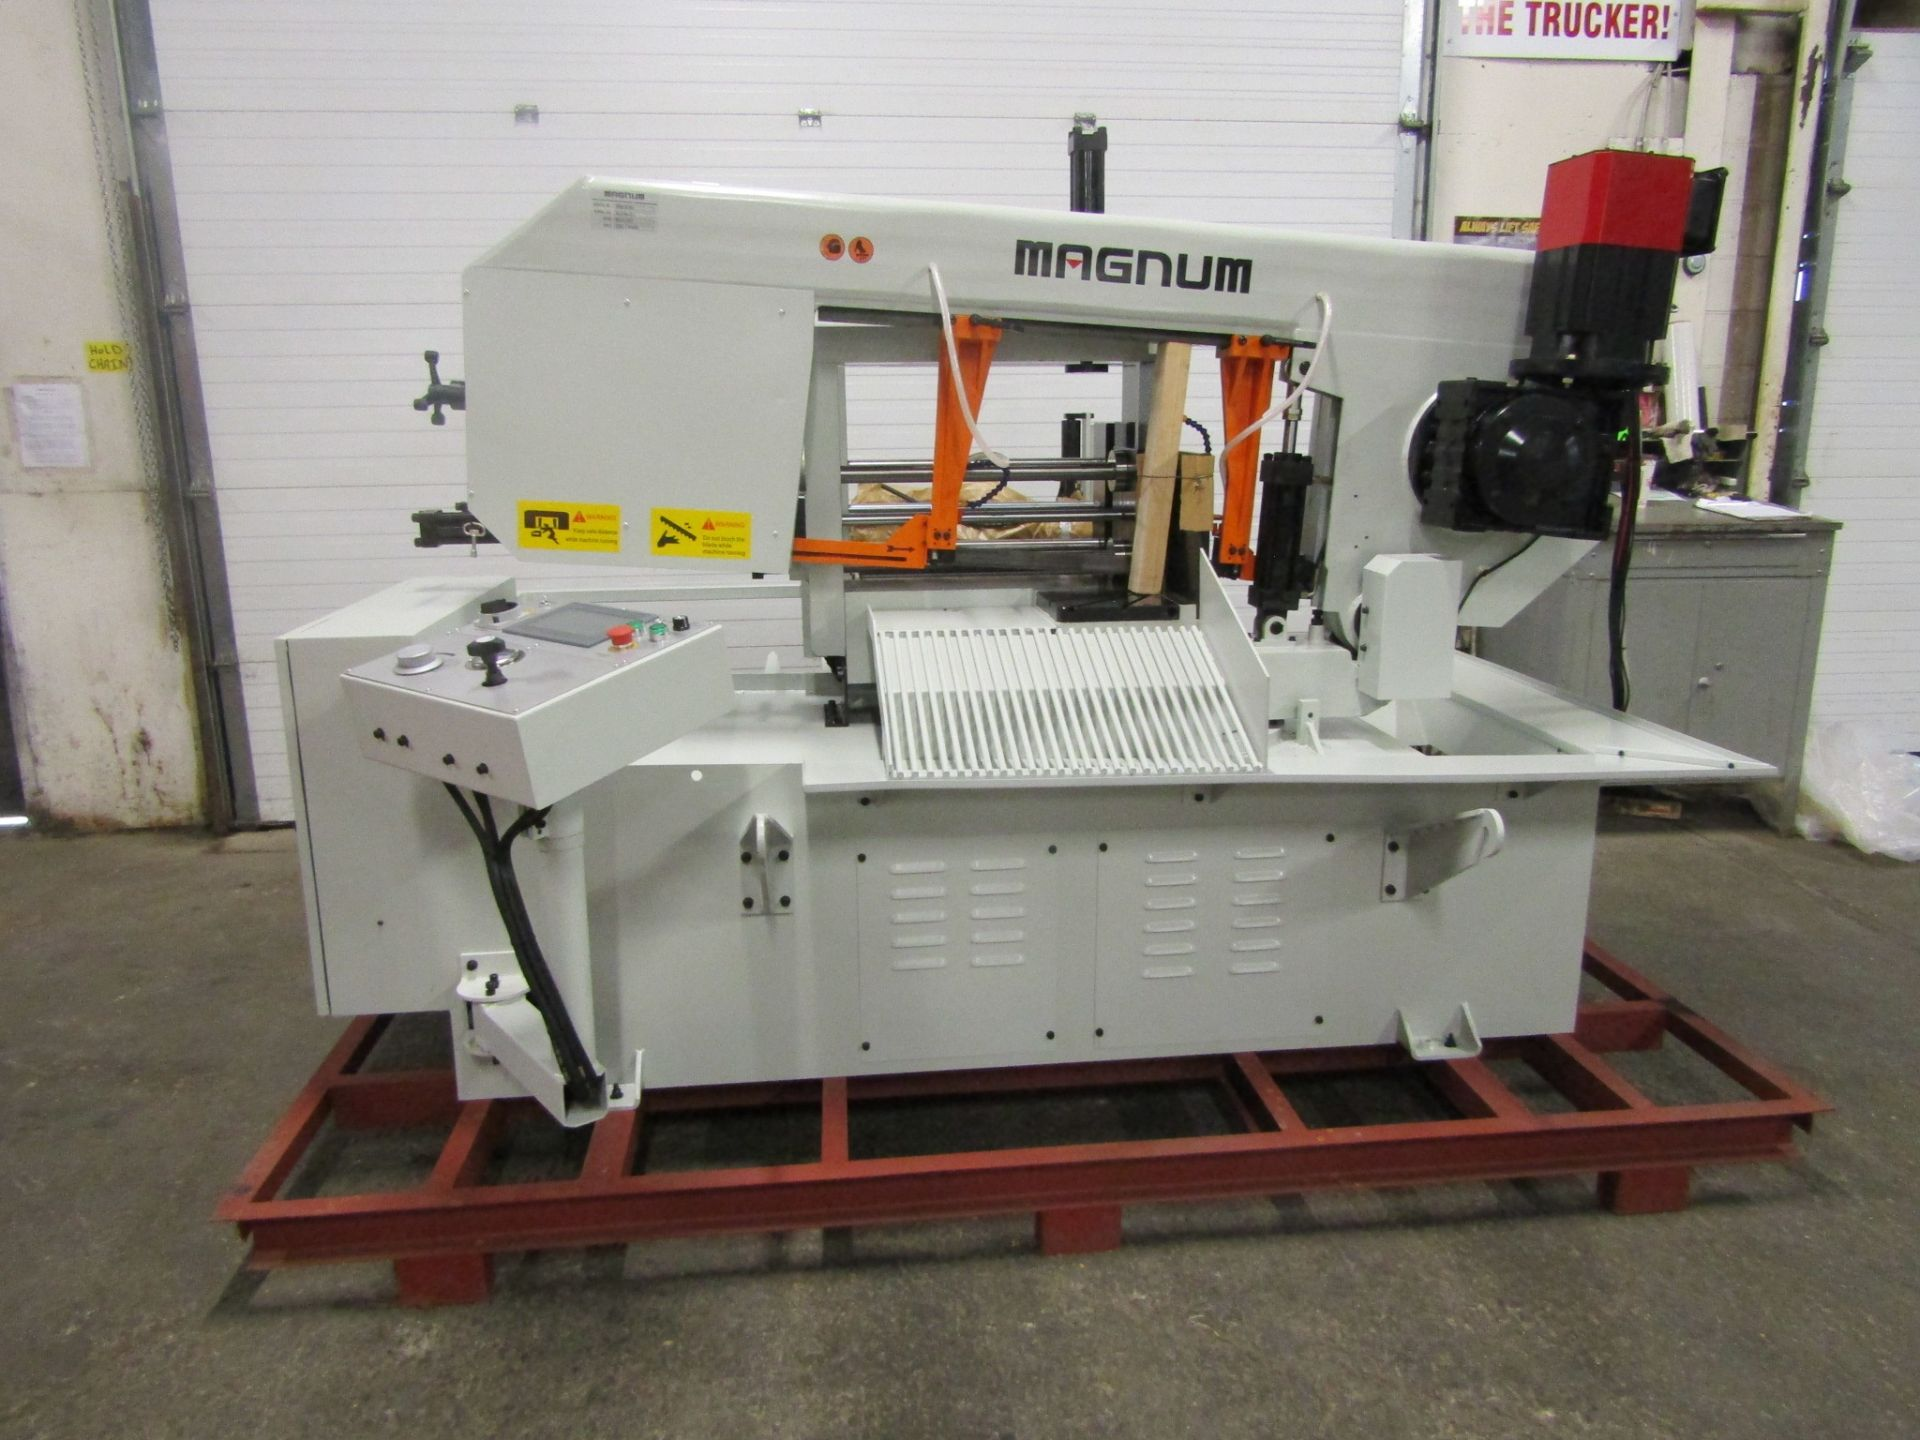 Magnum BSM-2618A Fully Automatic CNC Horizontal Band Saw - 26 X 18 inch HUGE CUTTING CAPACITY -